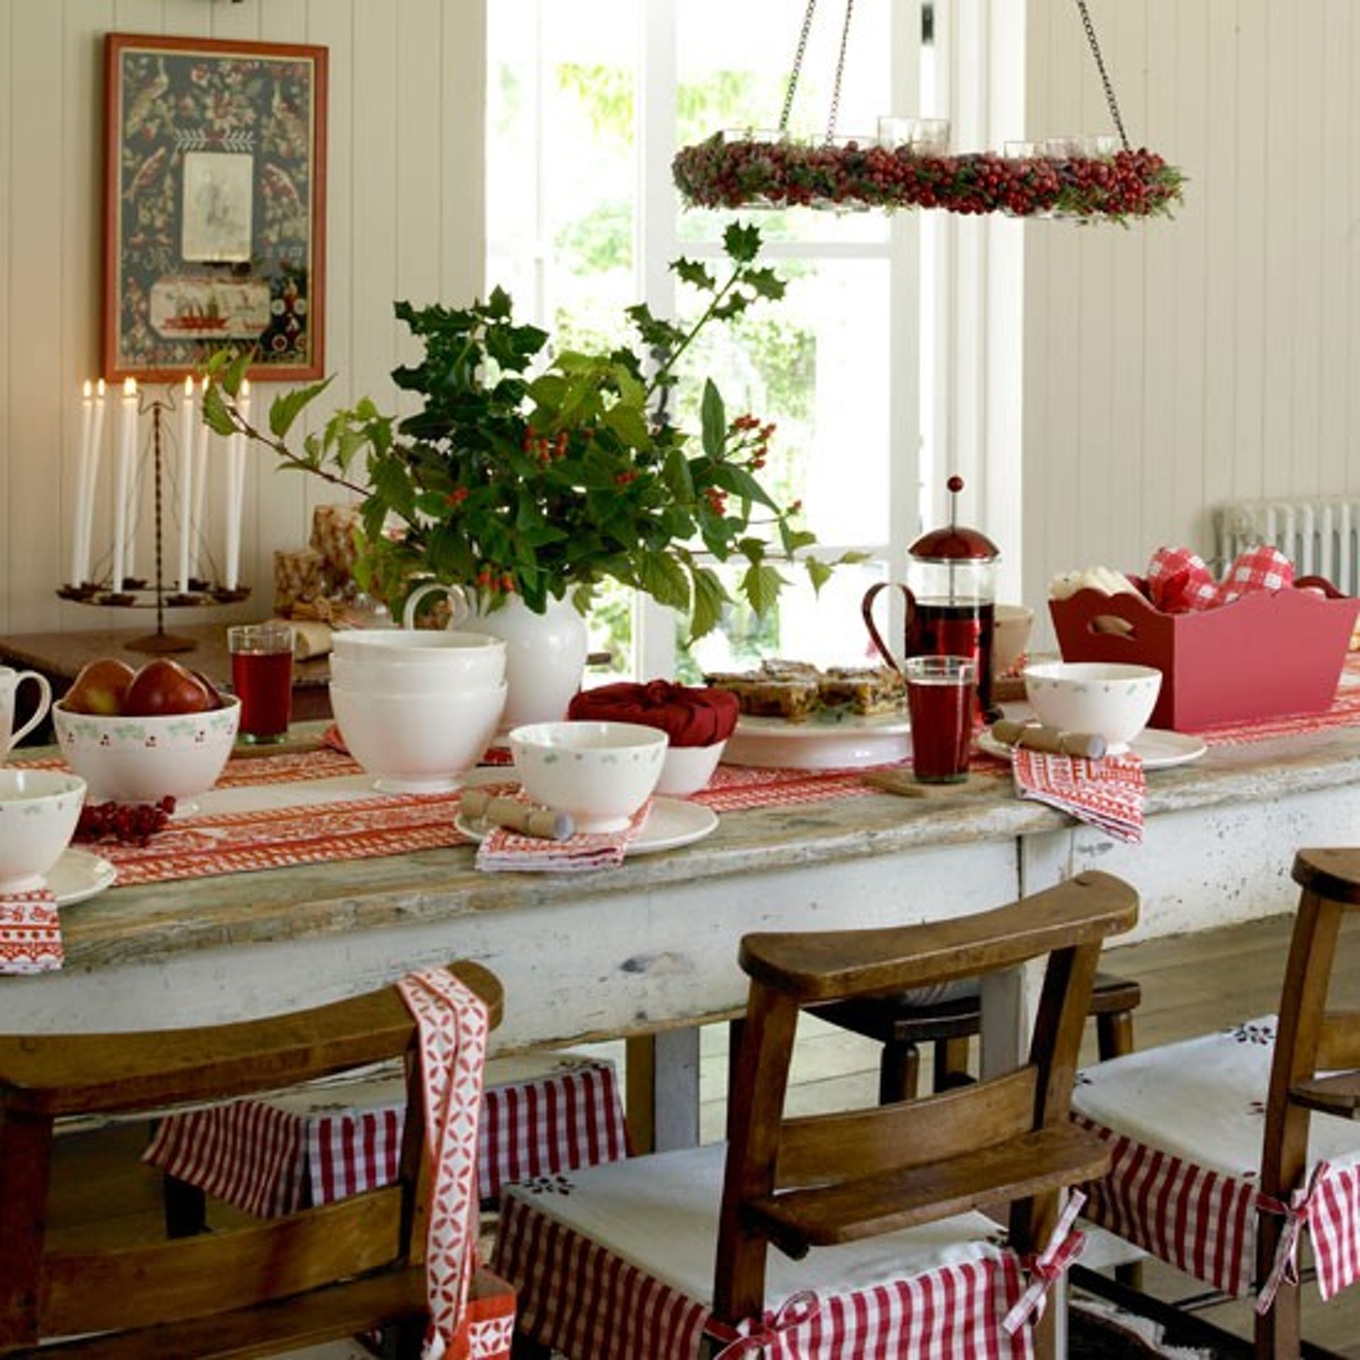 Christmas breakfast in Kitchen Christmas Decoration Ideas | LovelySpaces.com